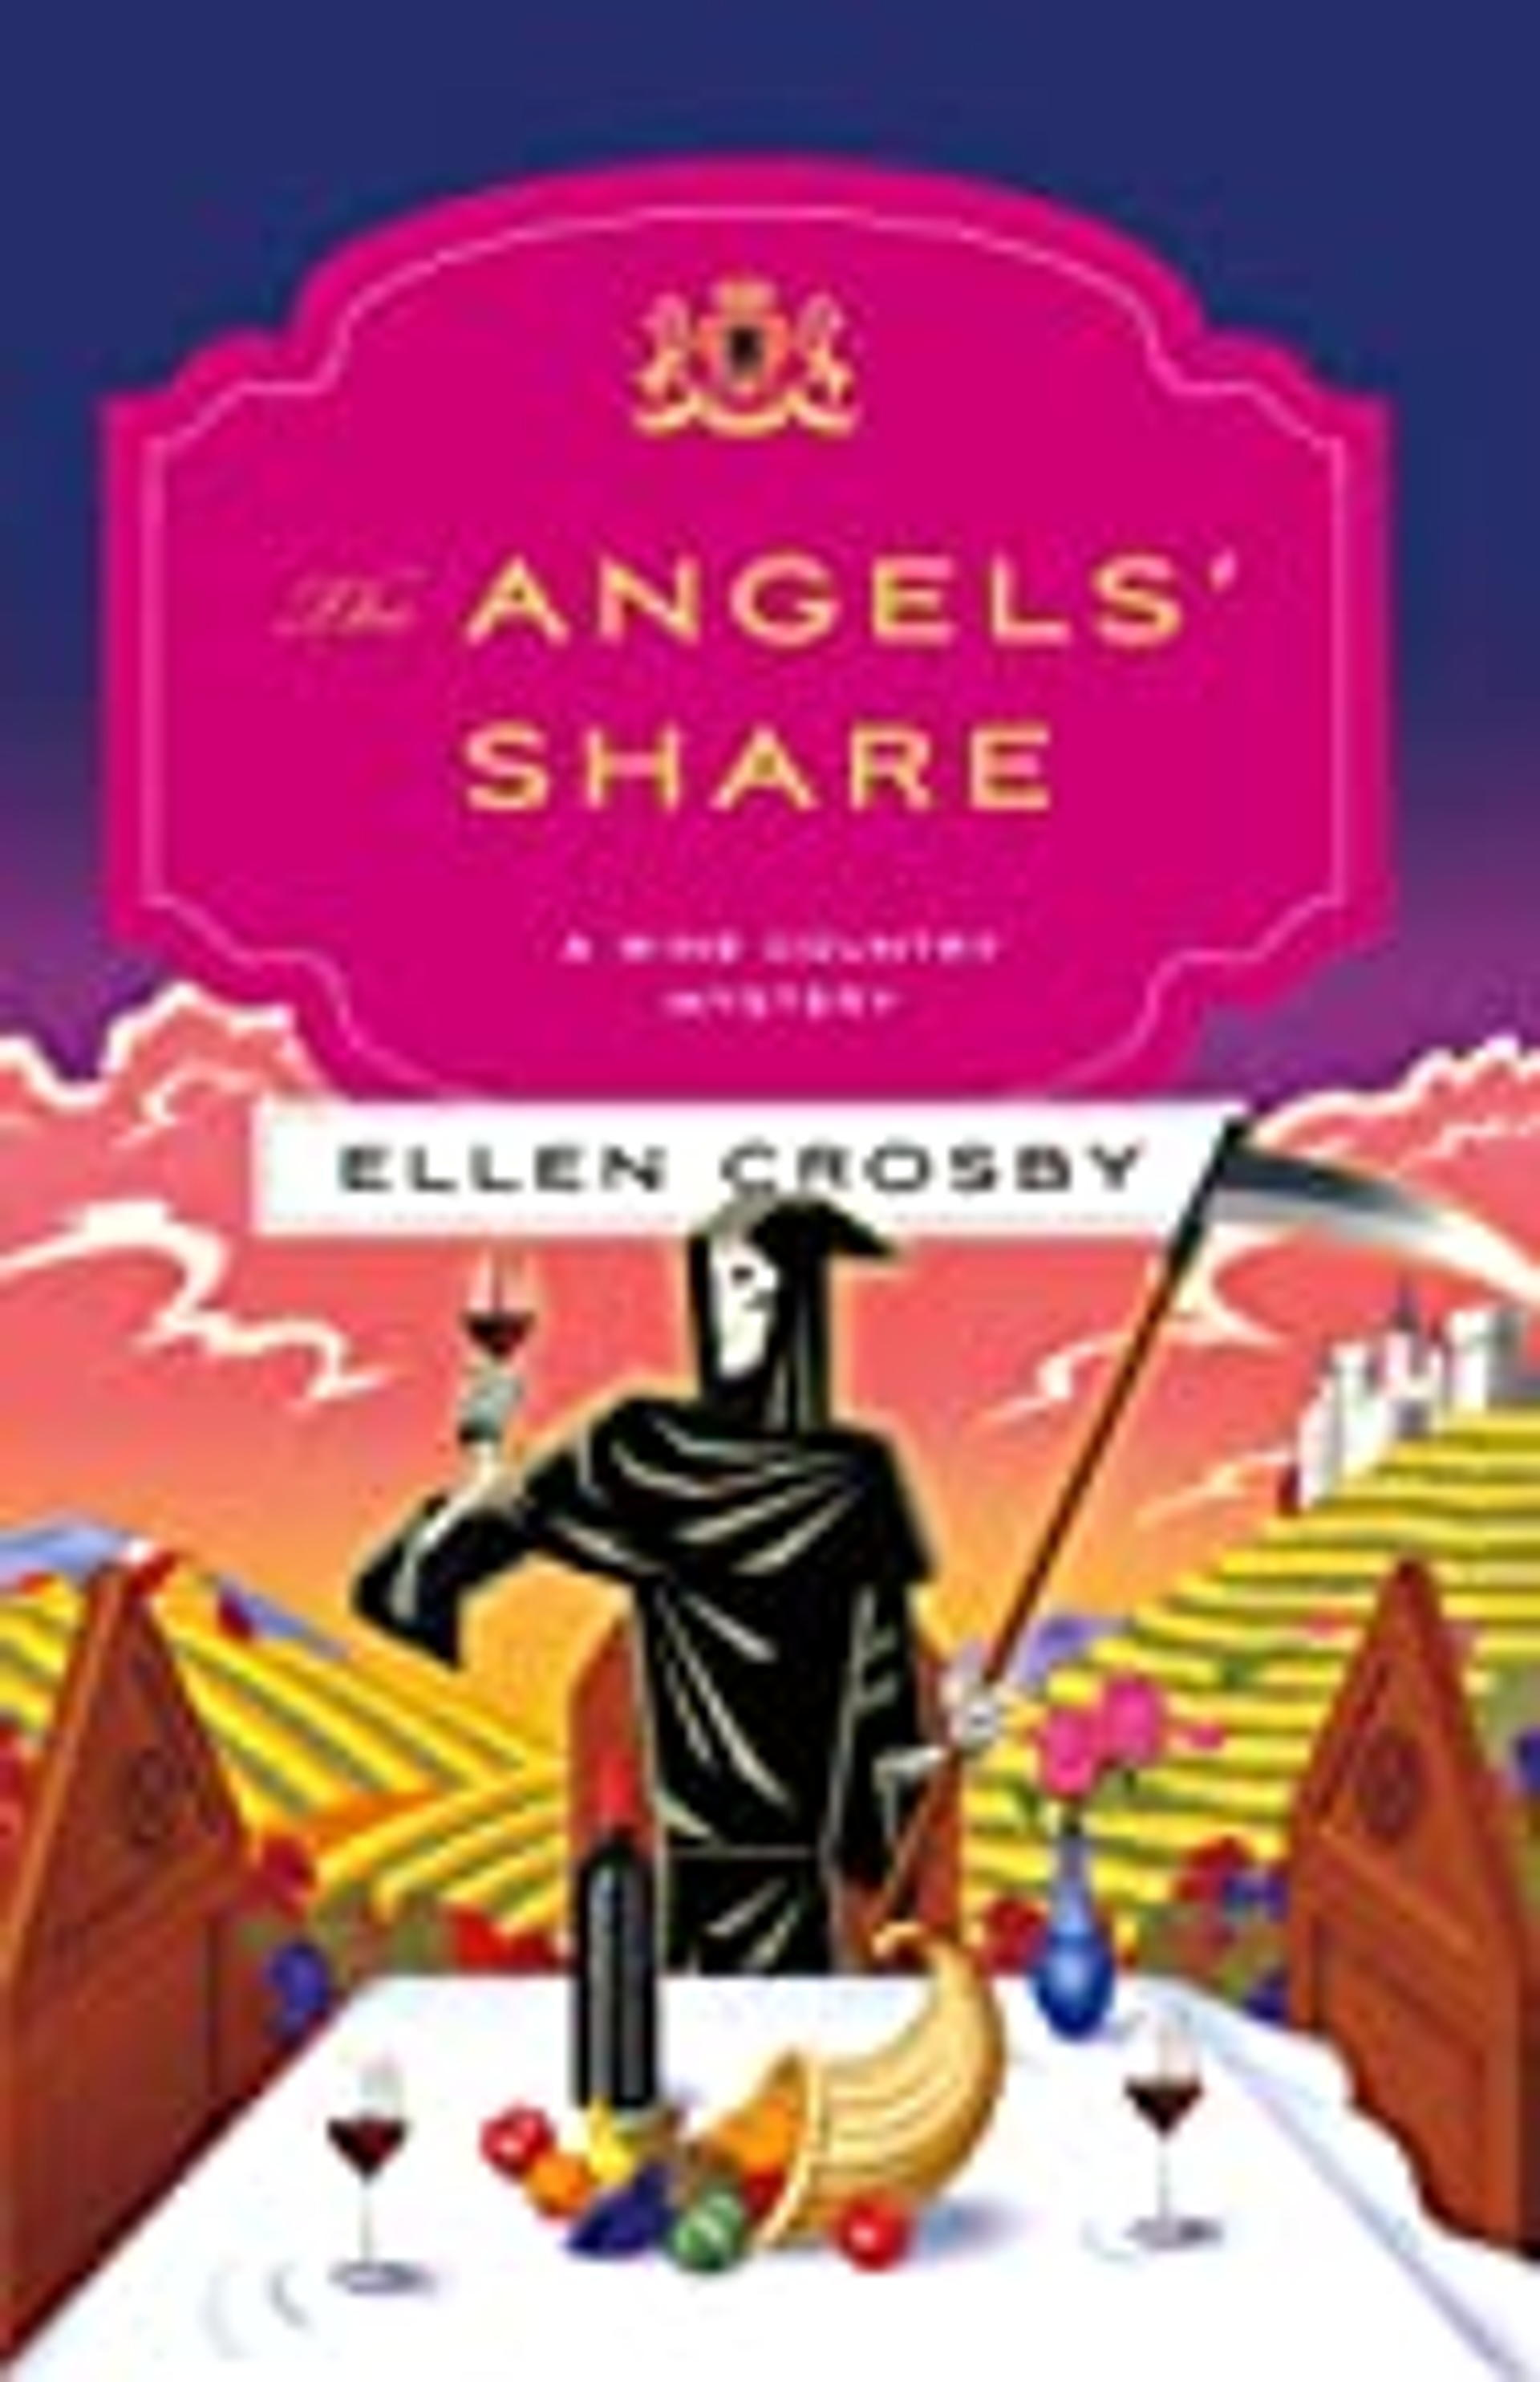 The Angels' Share, a Wine Country Mystery by Ellen Crosby